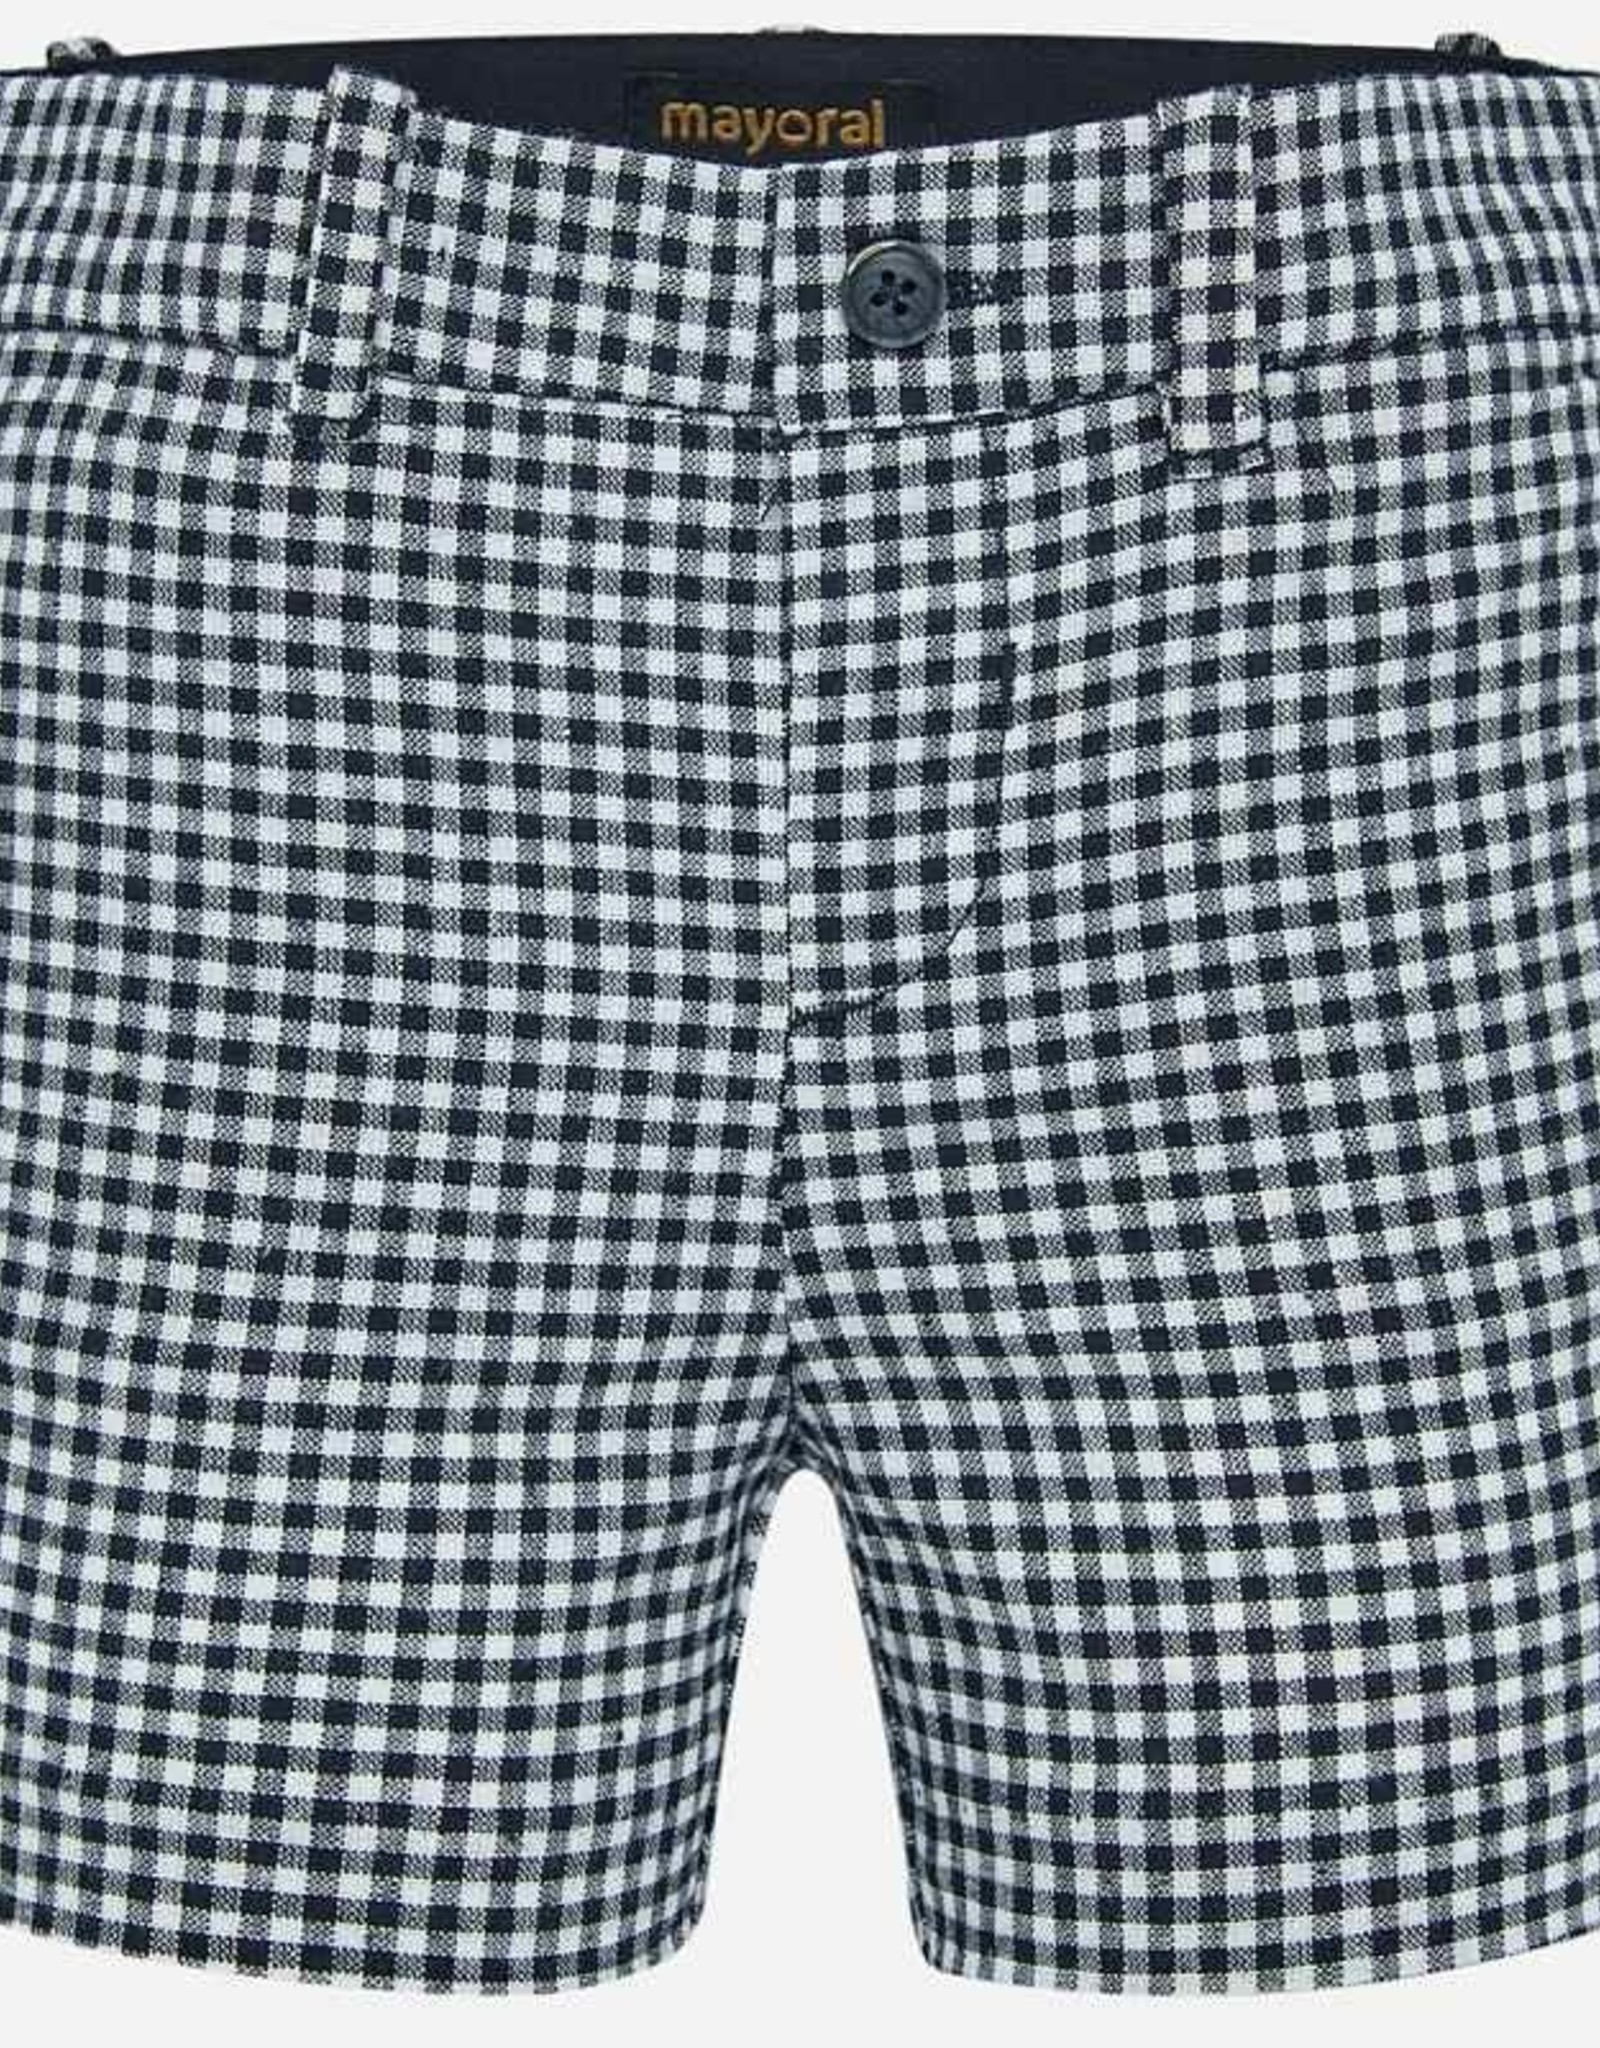 Mayoral Checked Bermuda Shorts